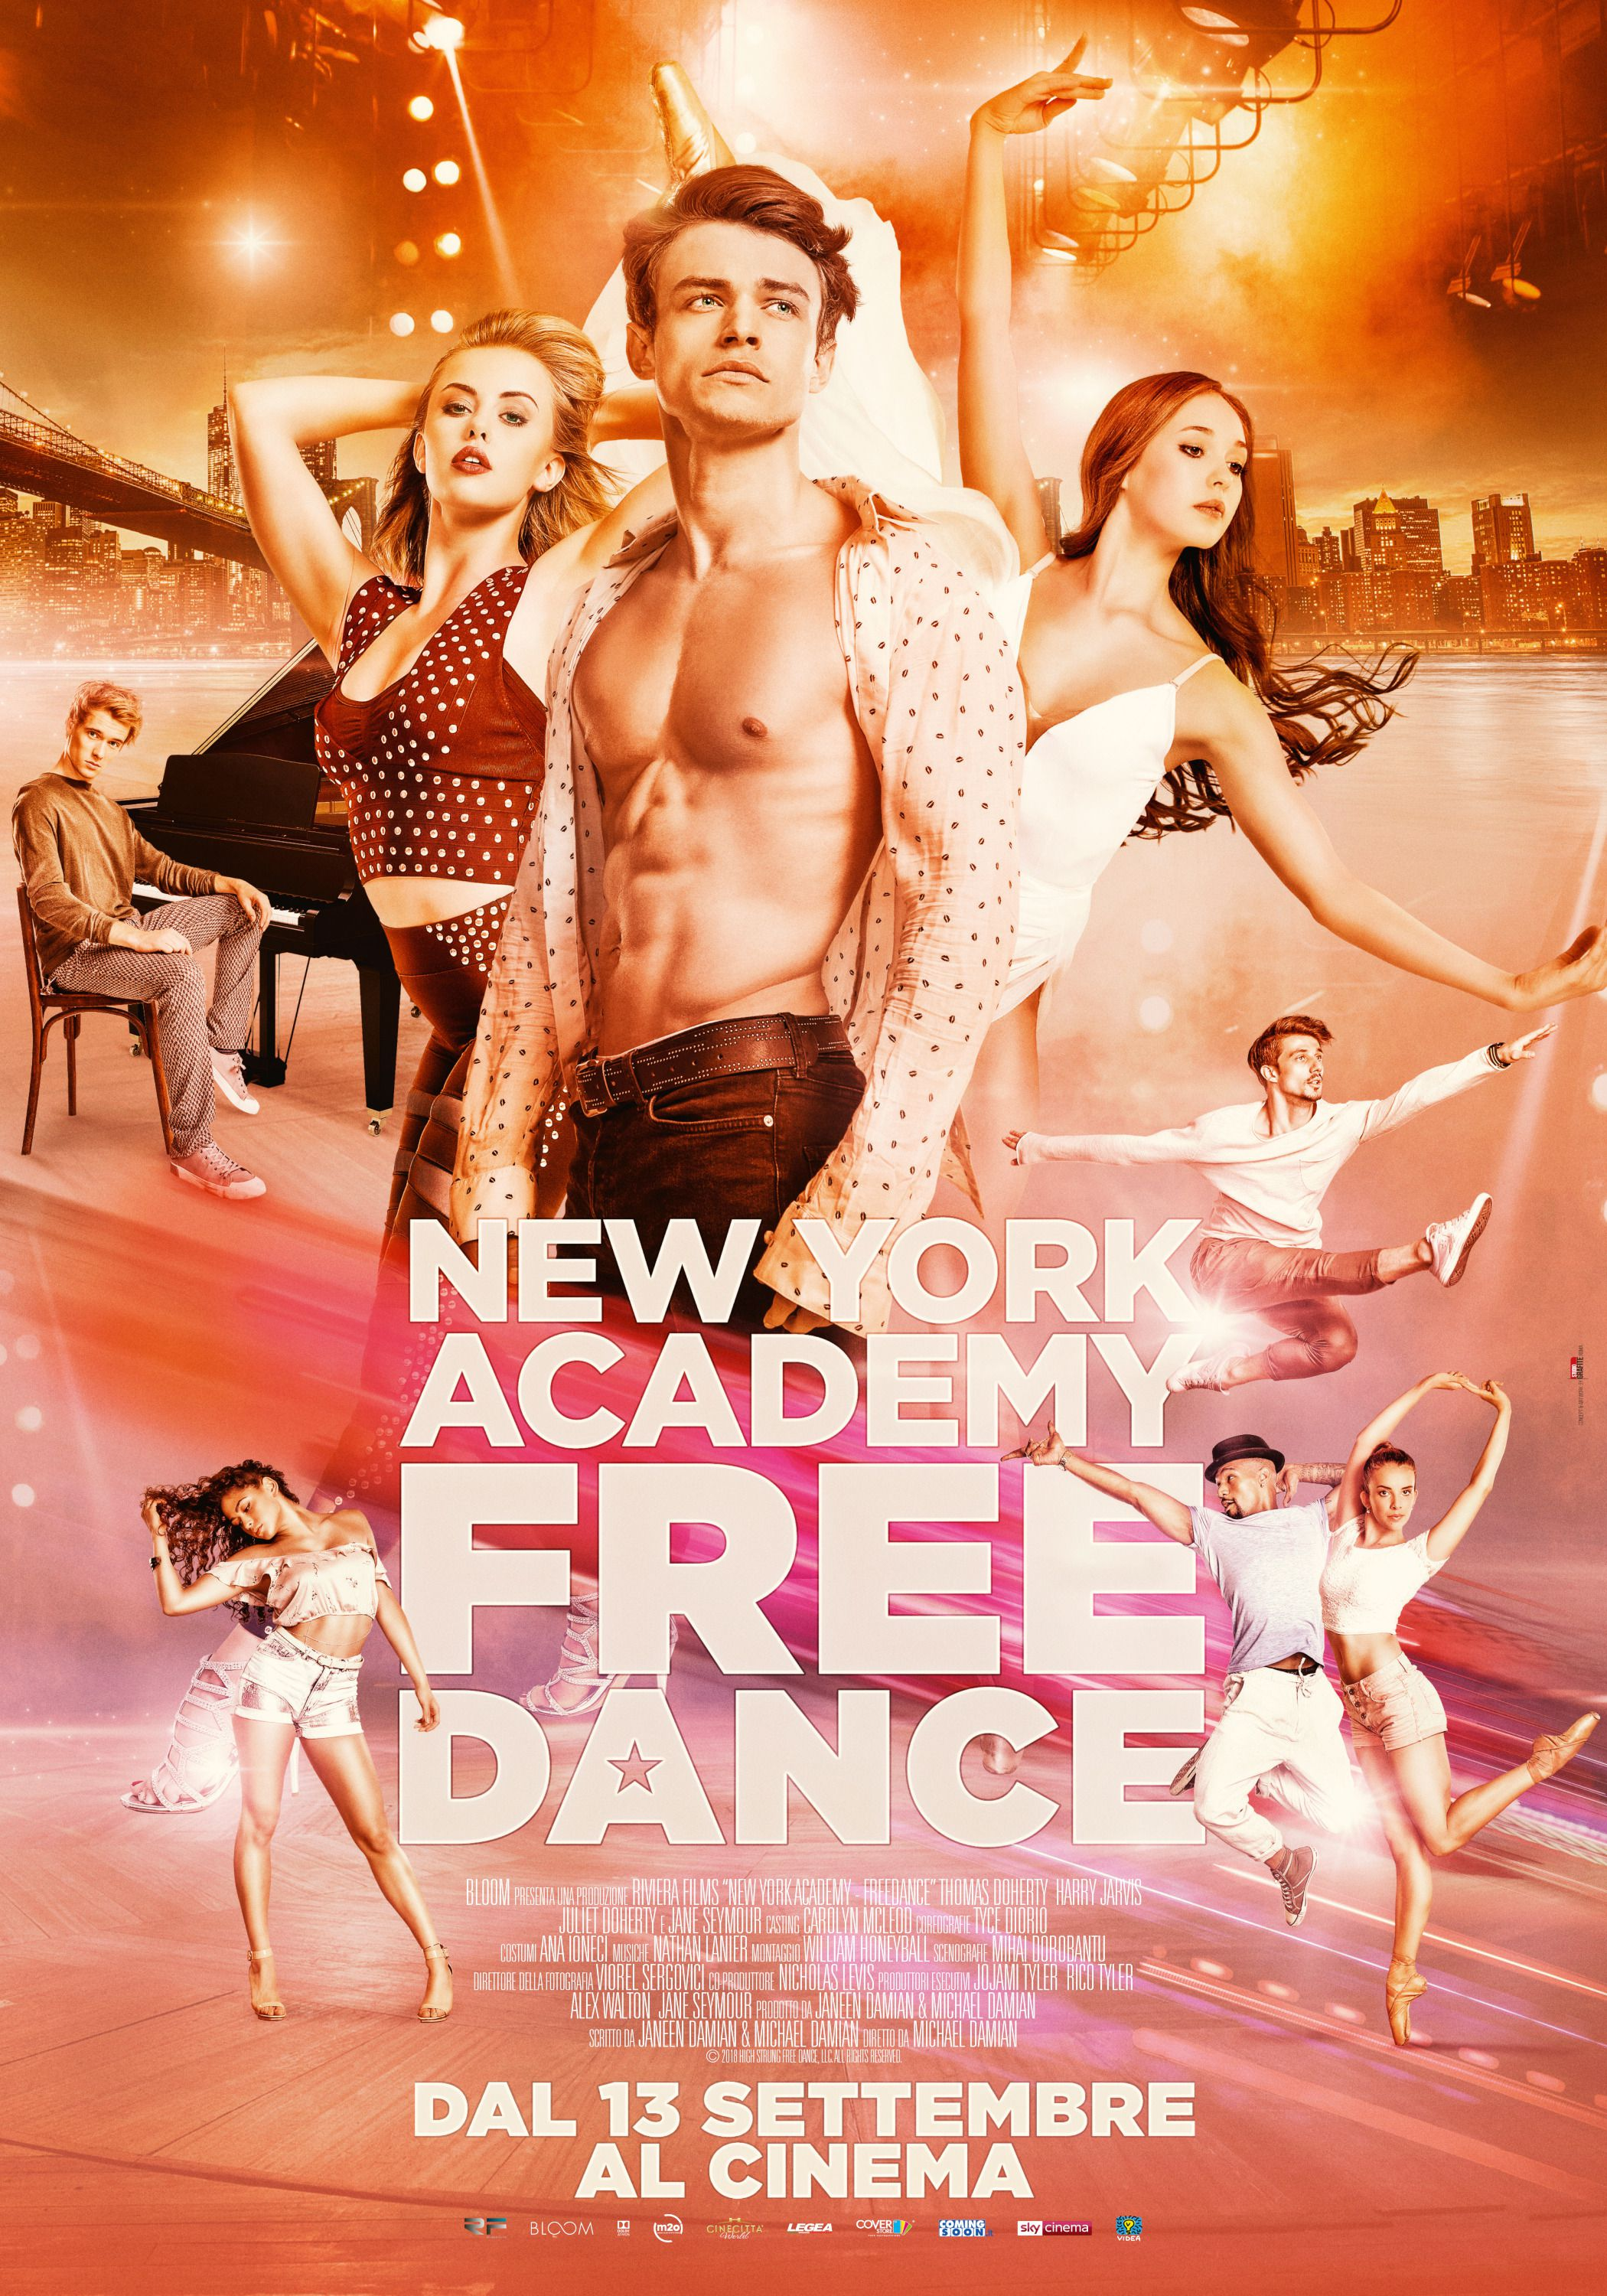 High Strung Free Dance - New York Academy Free Dance (2018)